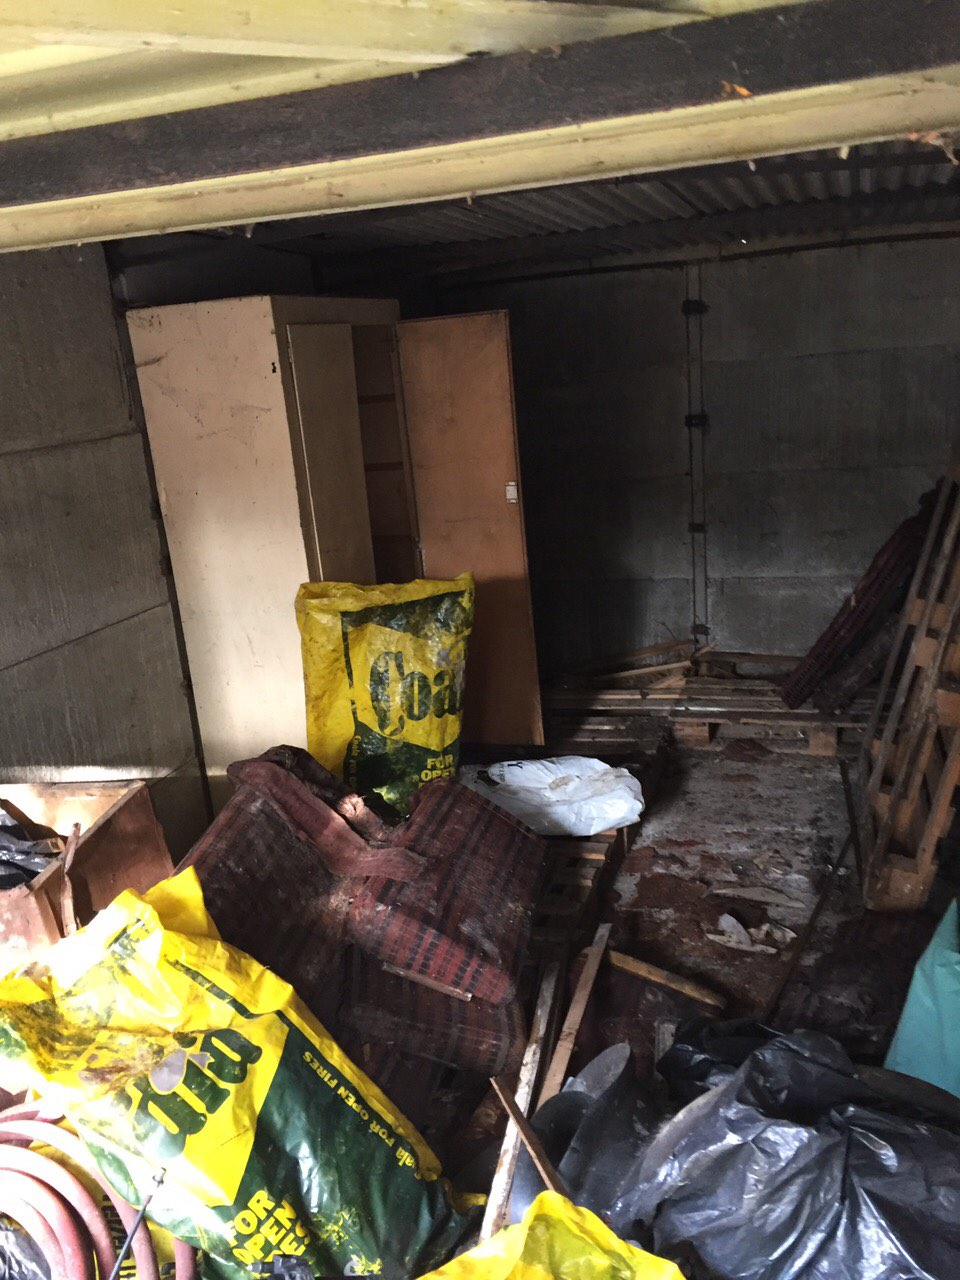 SW6 cellar clearance Fulham